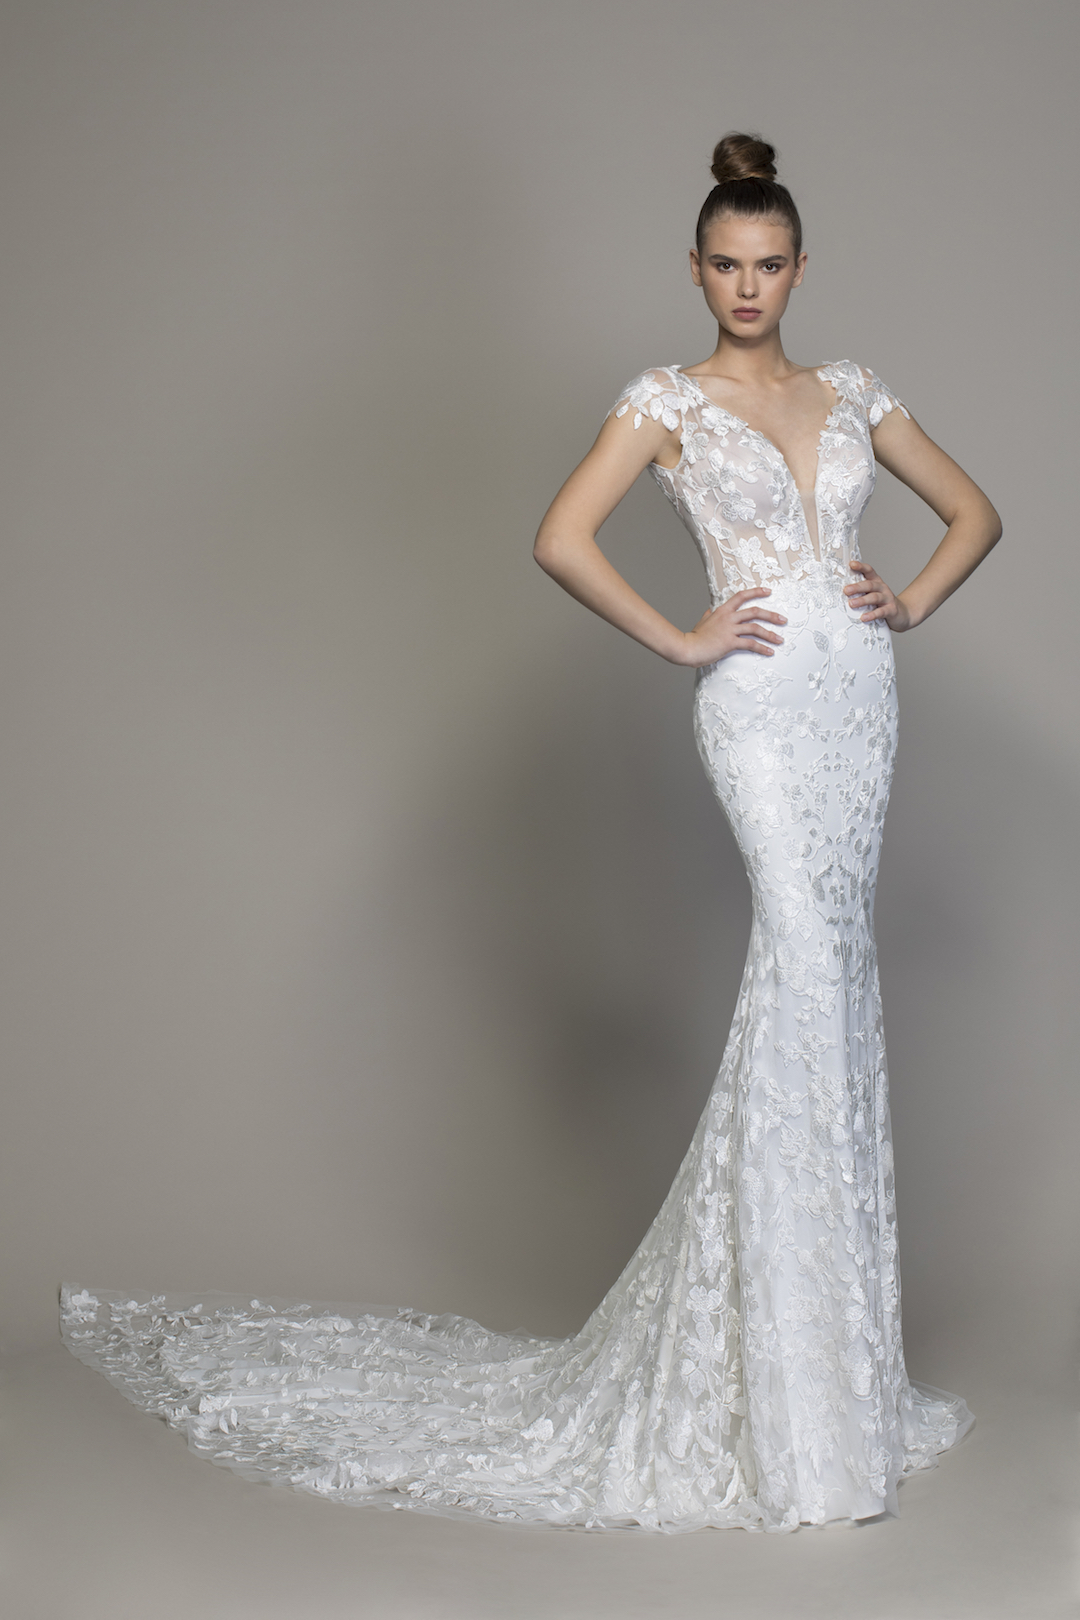 Pnina Tornai's new LOVE 2020 Collection is out! This is style 14763